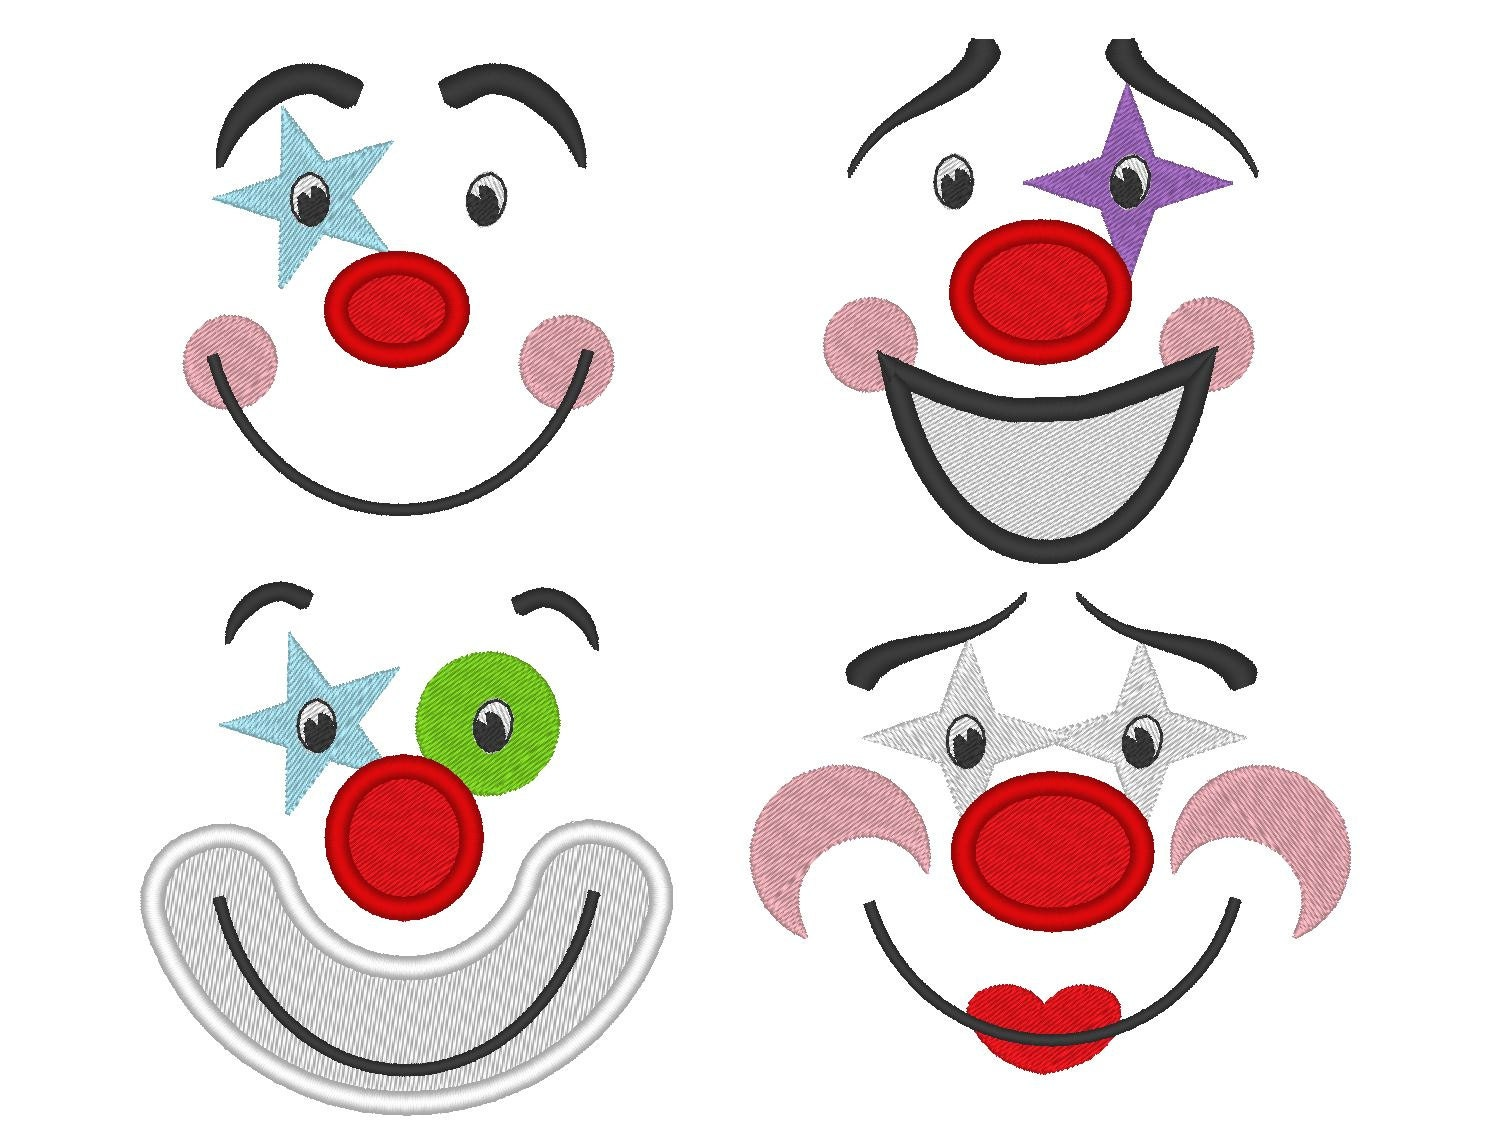 Adorable clown faces for your toy machine embroidery and for Embroidery office design version 9